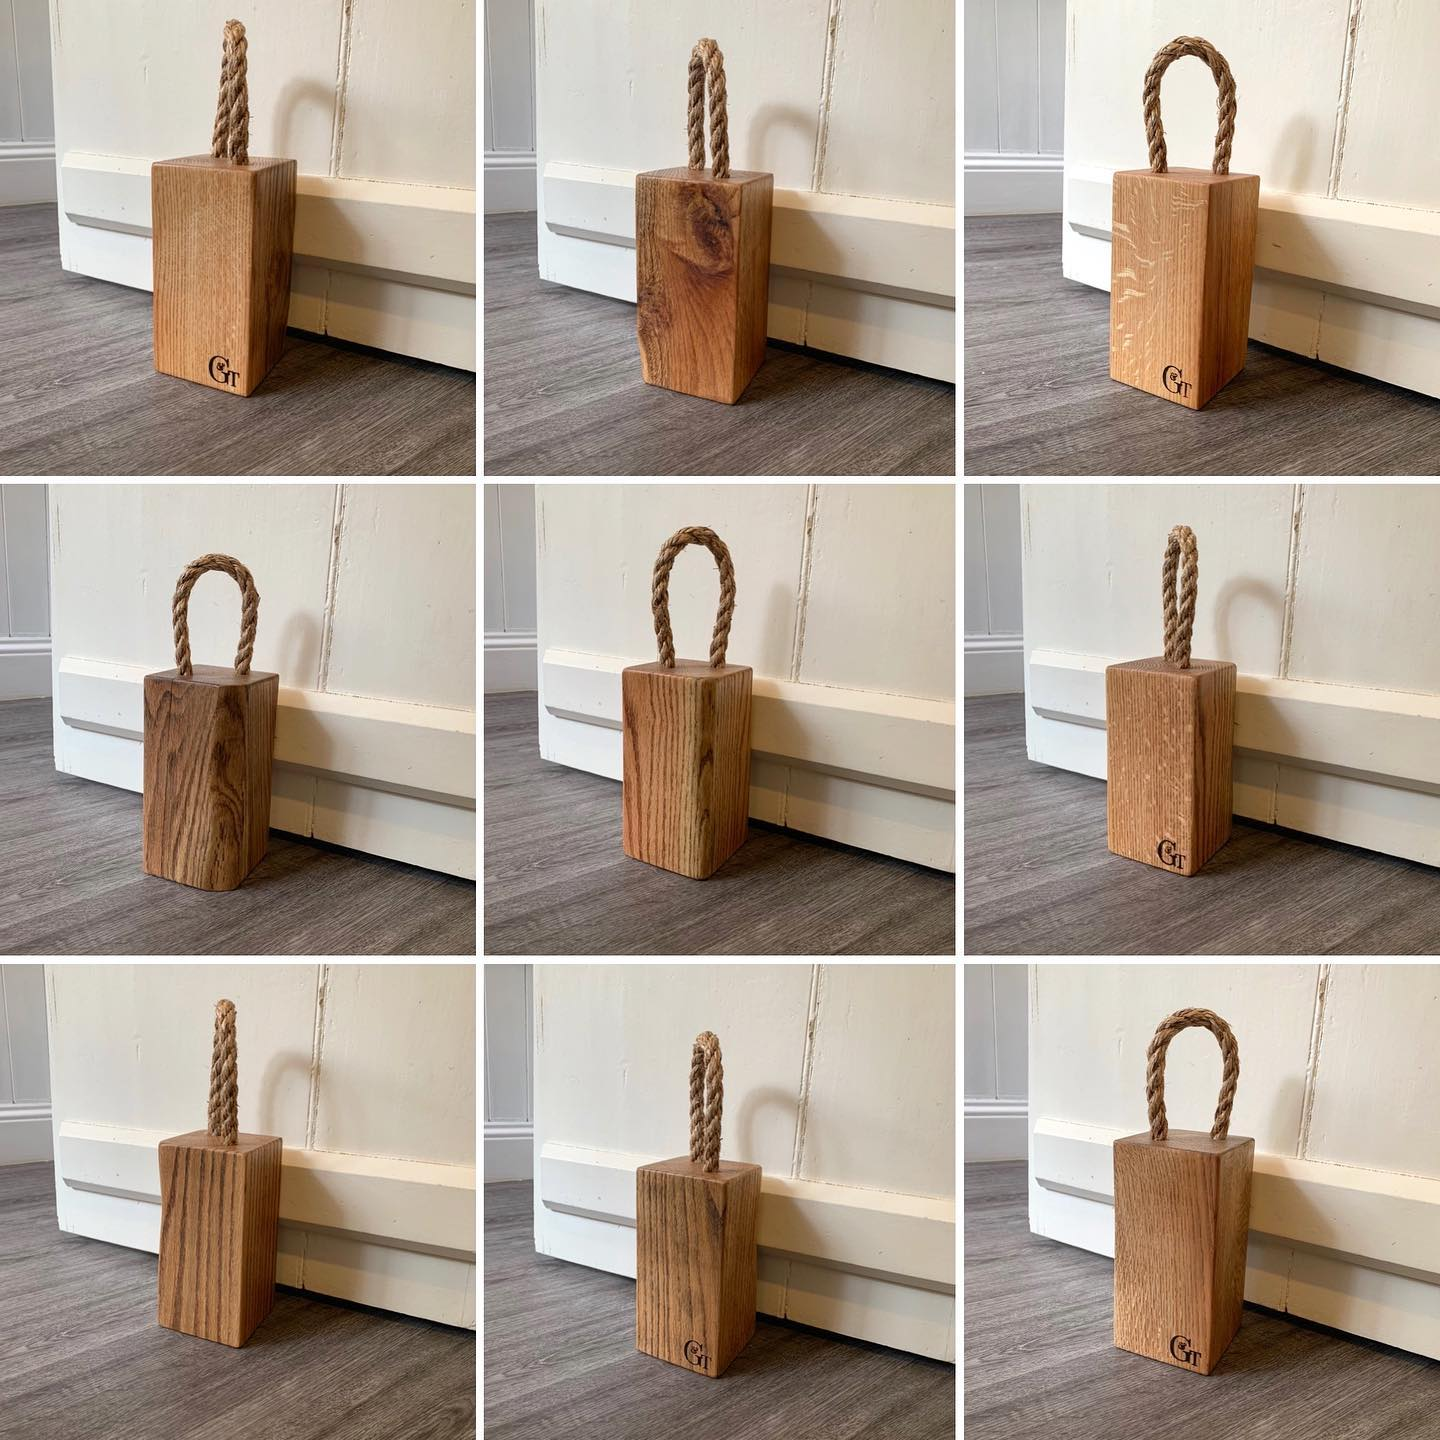 We've just restocked our website with these lovely extra characterful doorstops. £19 plus P&P each one is unique and you can pick from 5 different options.Head over to our website to see more-Link in bio @gingerandtweed ...#stockedup #doorstops #oak #hand tagged #homewares #summertime #opendoor #summerbreeze #naturalmaterials #sustainable #character #madefromwood #workingfromhome #homestudio